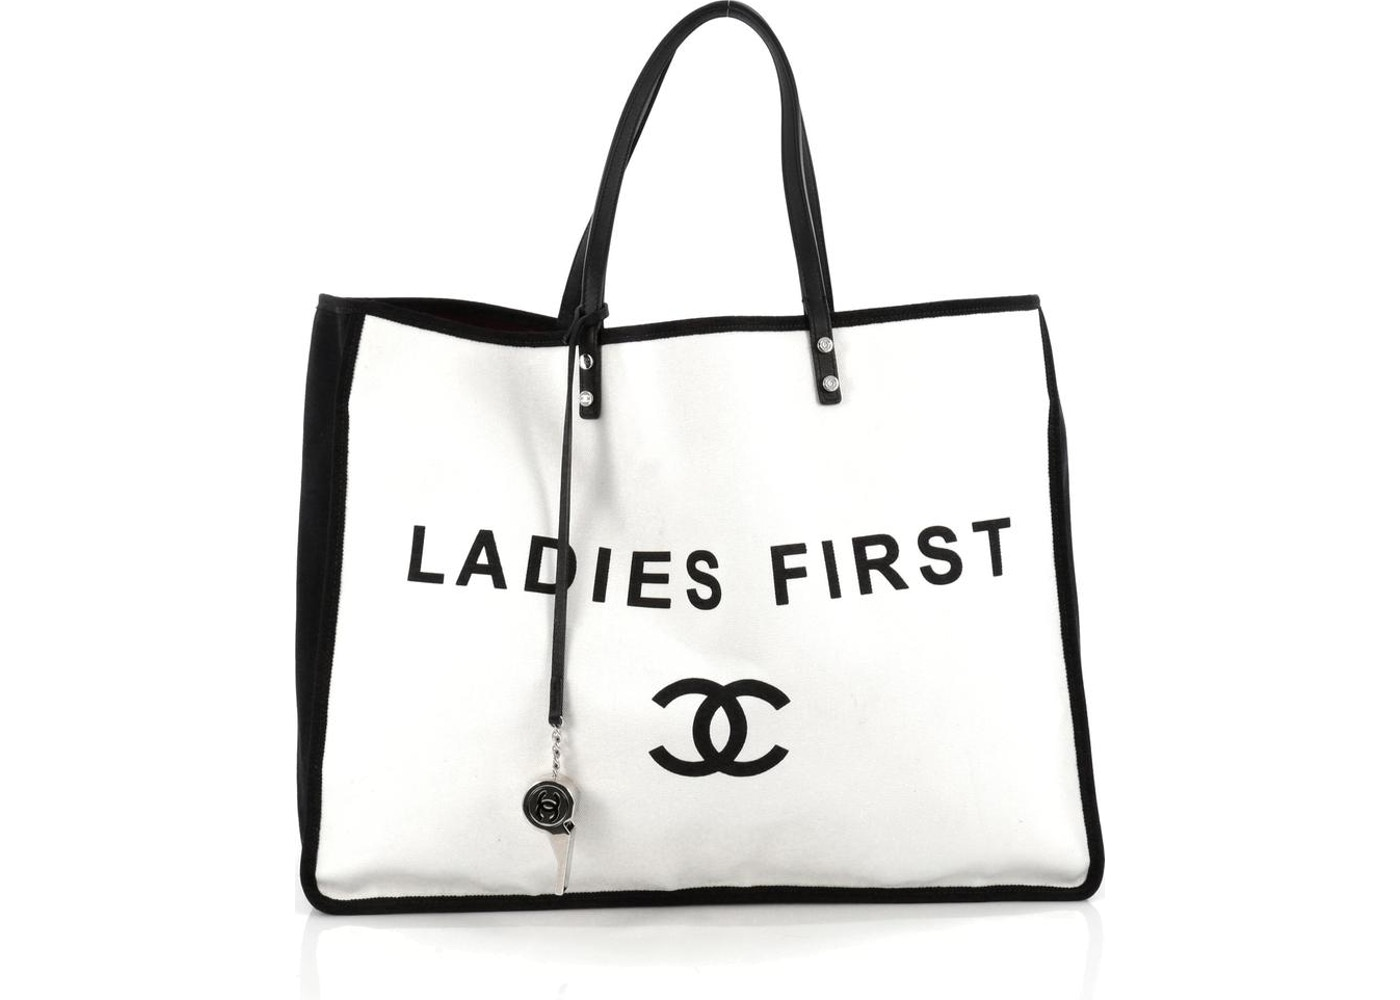 00030b80a366 Chanel Ladies First Whistle Tote Printed Large White/Black. Printed Large  White/Black